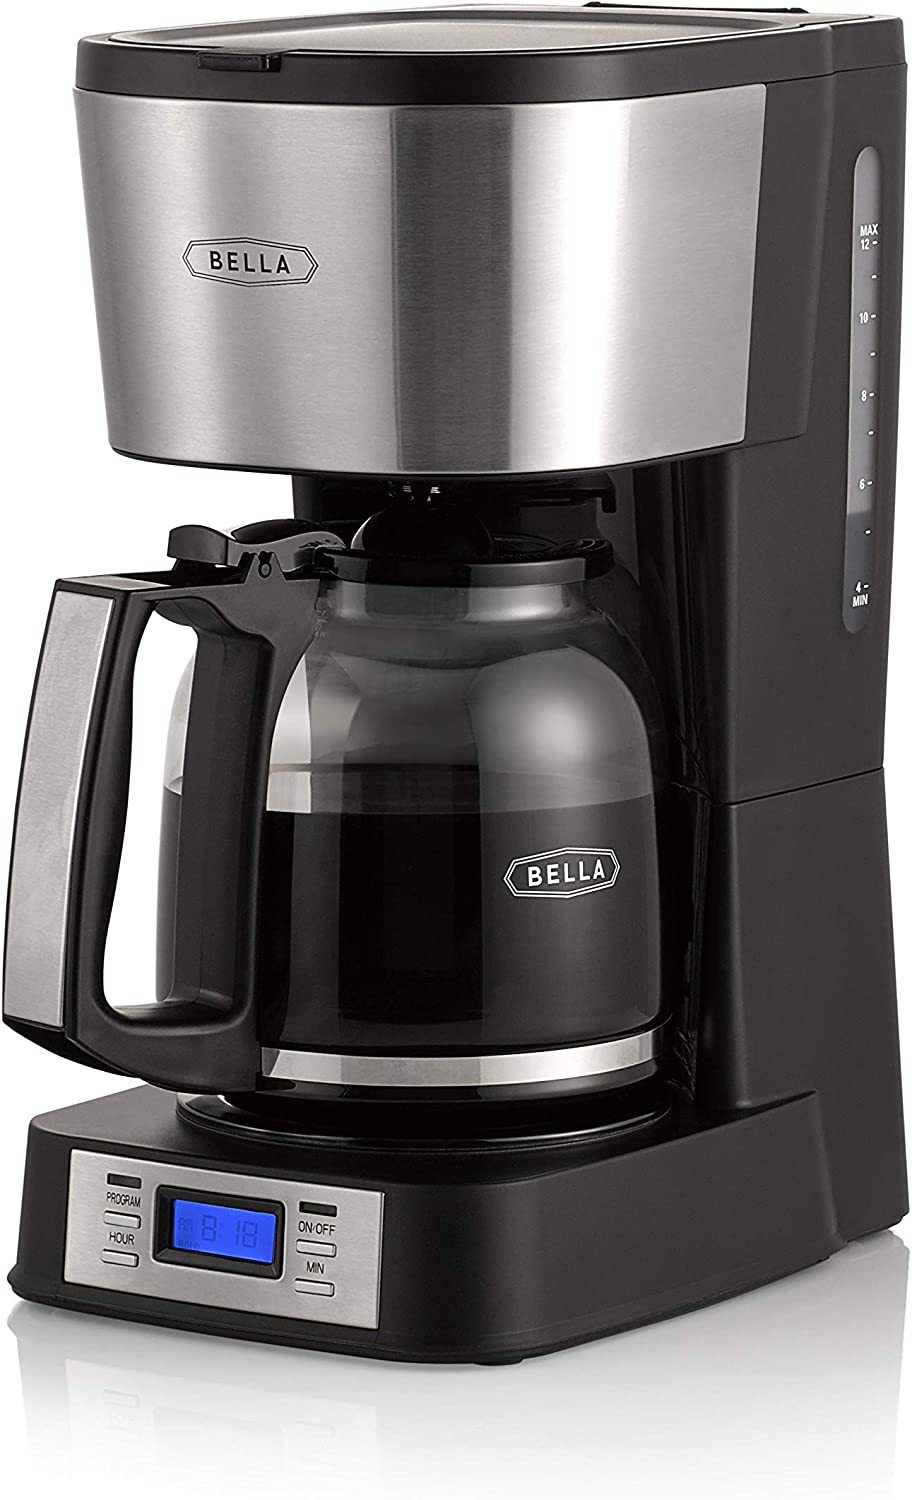 BELLA (14755) 12 Cup Coffee Maker with Brew Strength Selector & Single Cup Feature, Stainless Steel